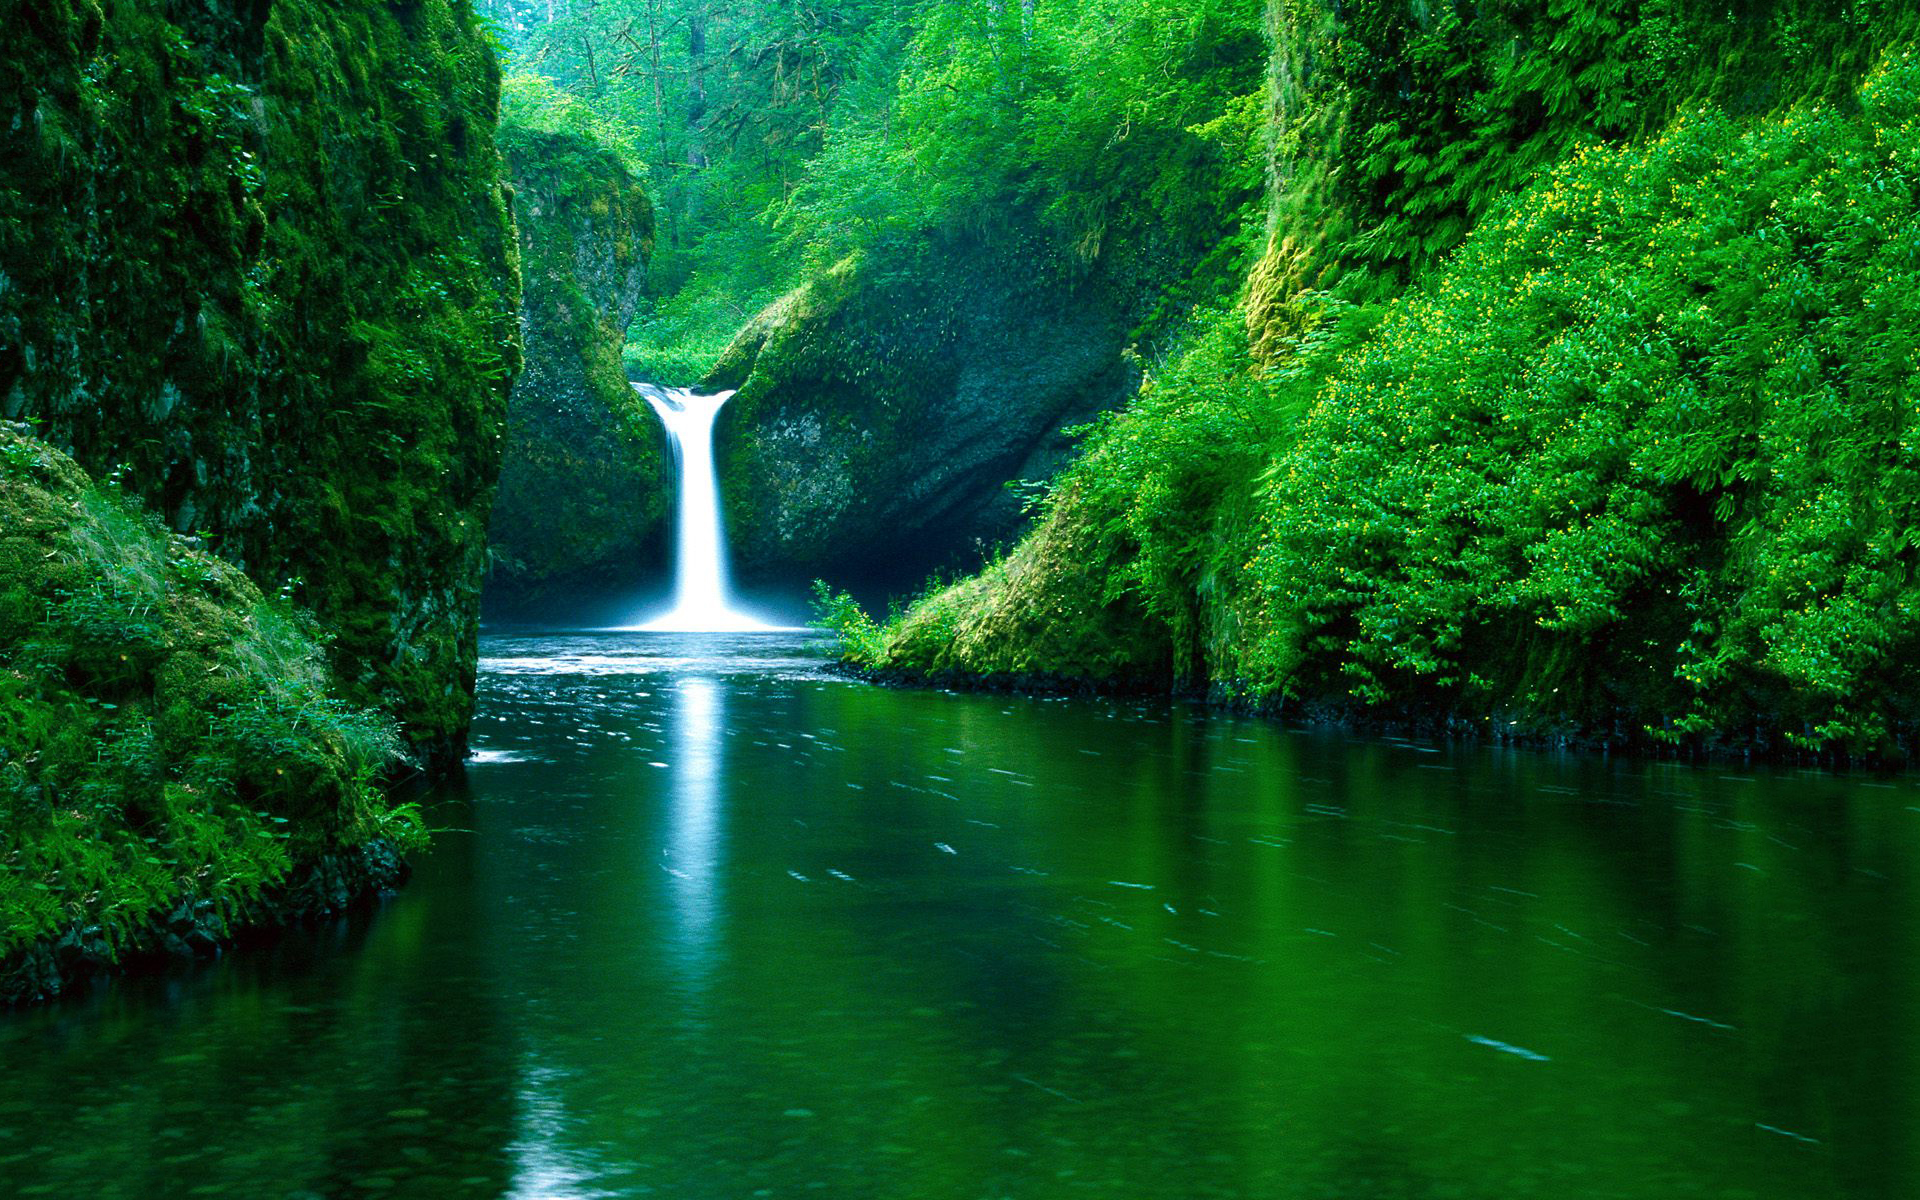 2738 waterfall hd wallpapers | background images - wallpaper abyss